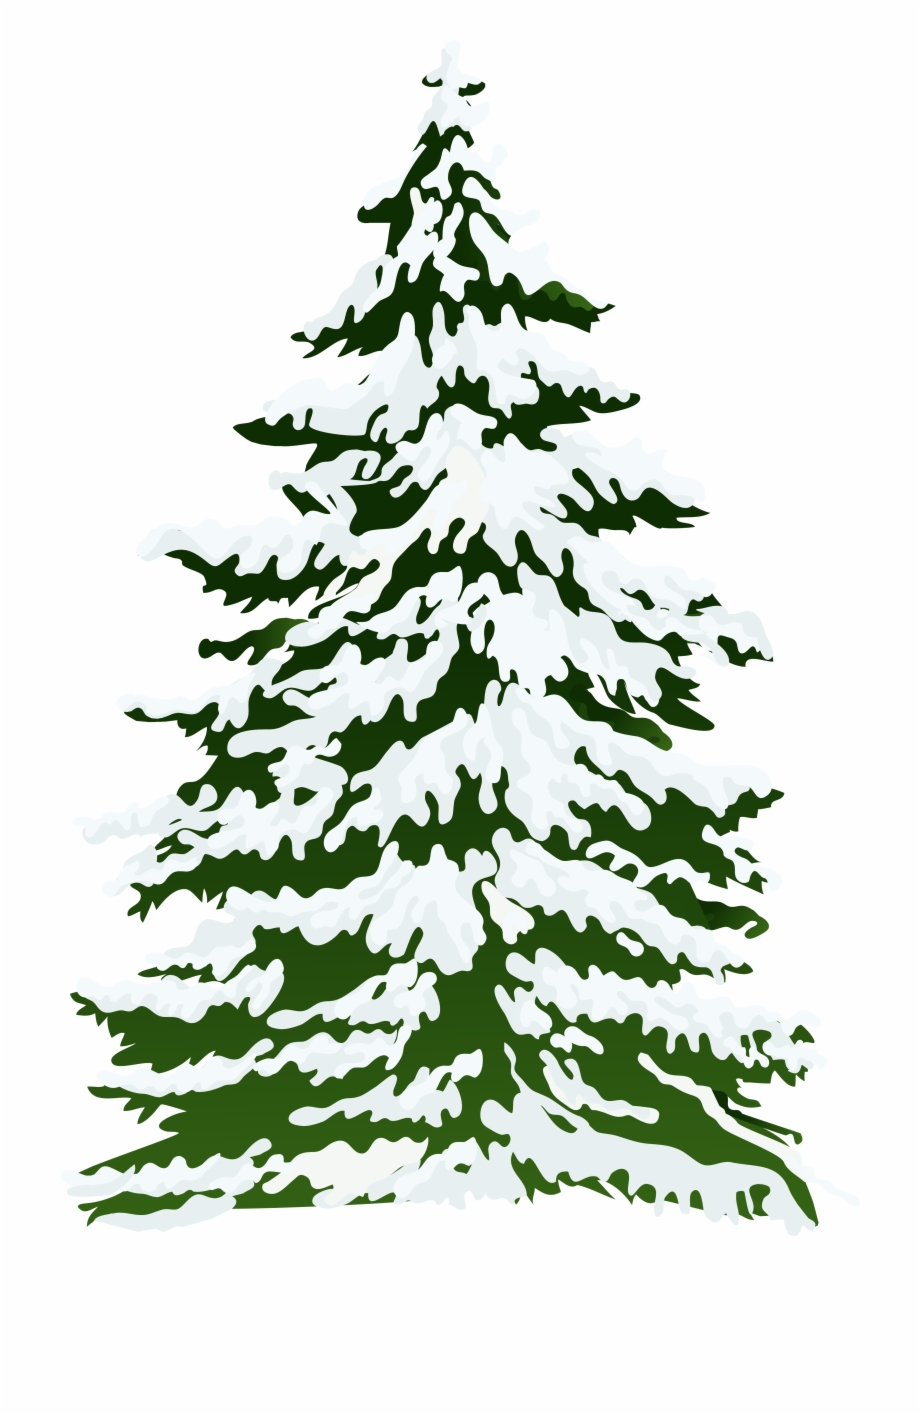 Snowy Tree Snow Pine Winter Free Clipart Hq Clipart.